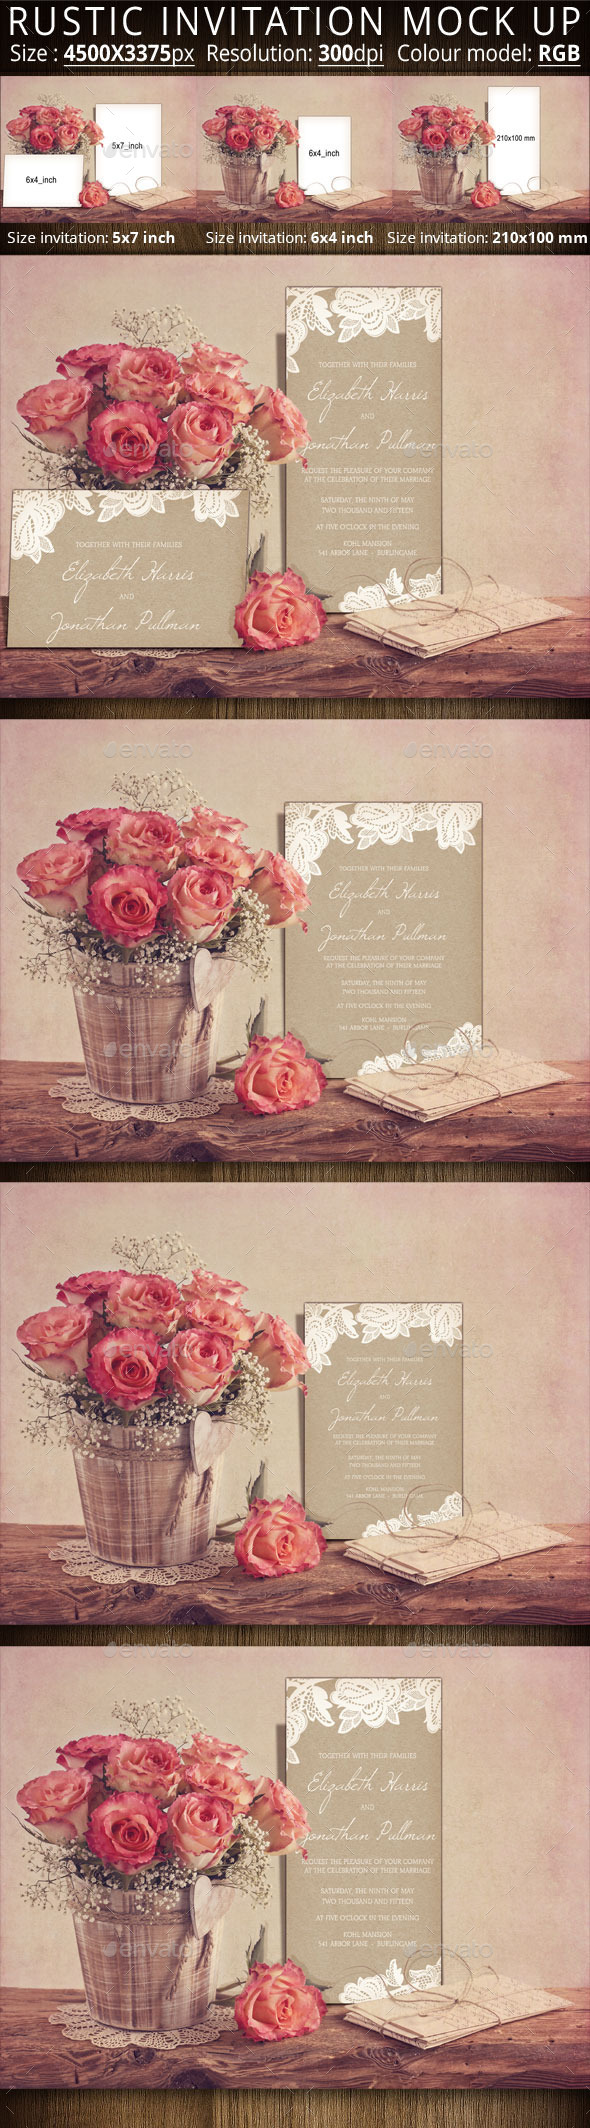 GraphicRiver Rustic Invitation Mock Up 11473429